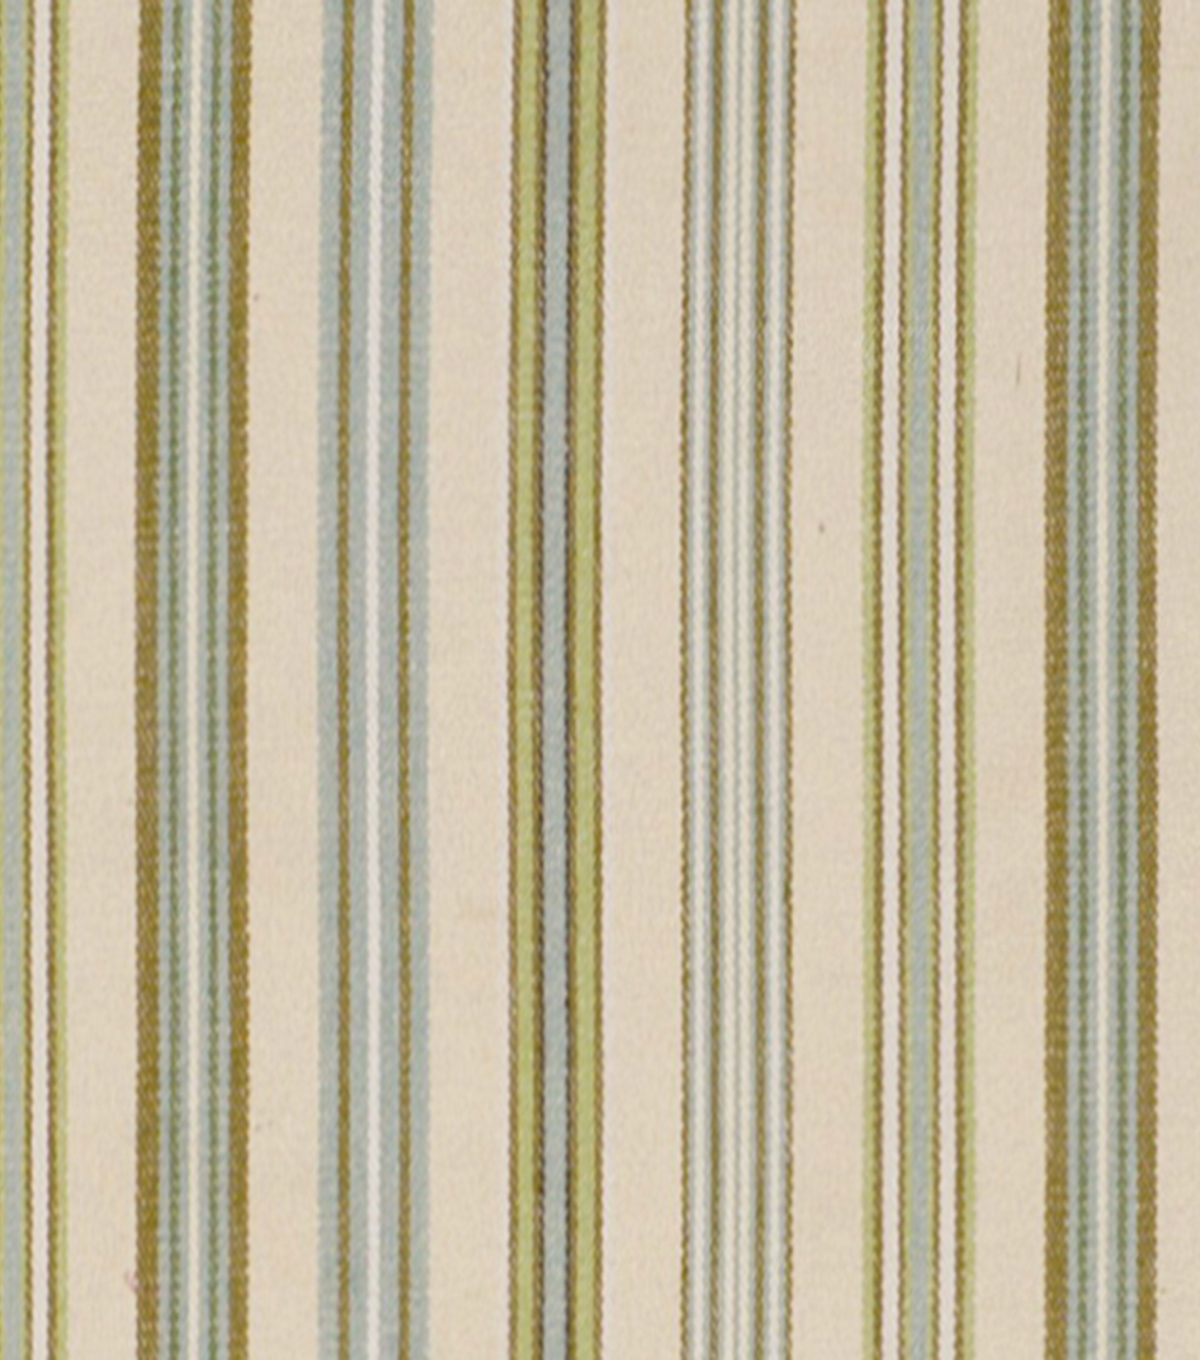 Home Decor 8\u0022x8\u0022 Fabric Swatch-Robert Allen Dune Stripe Seafoam